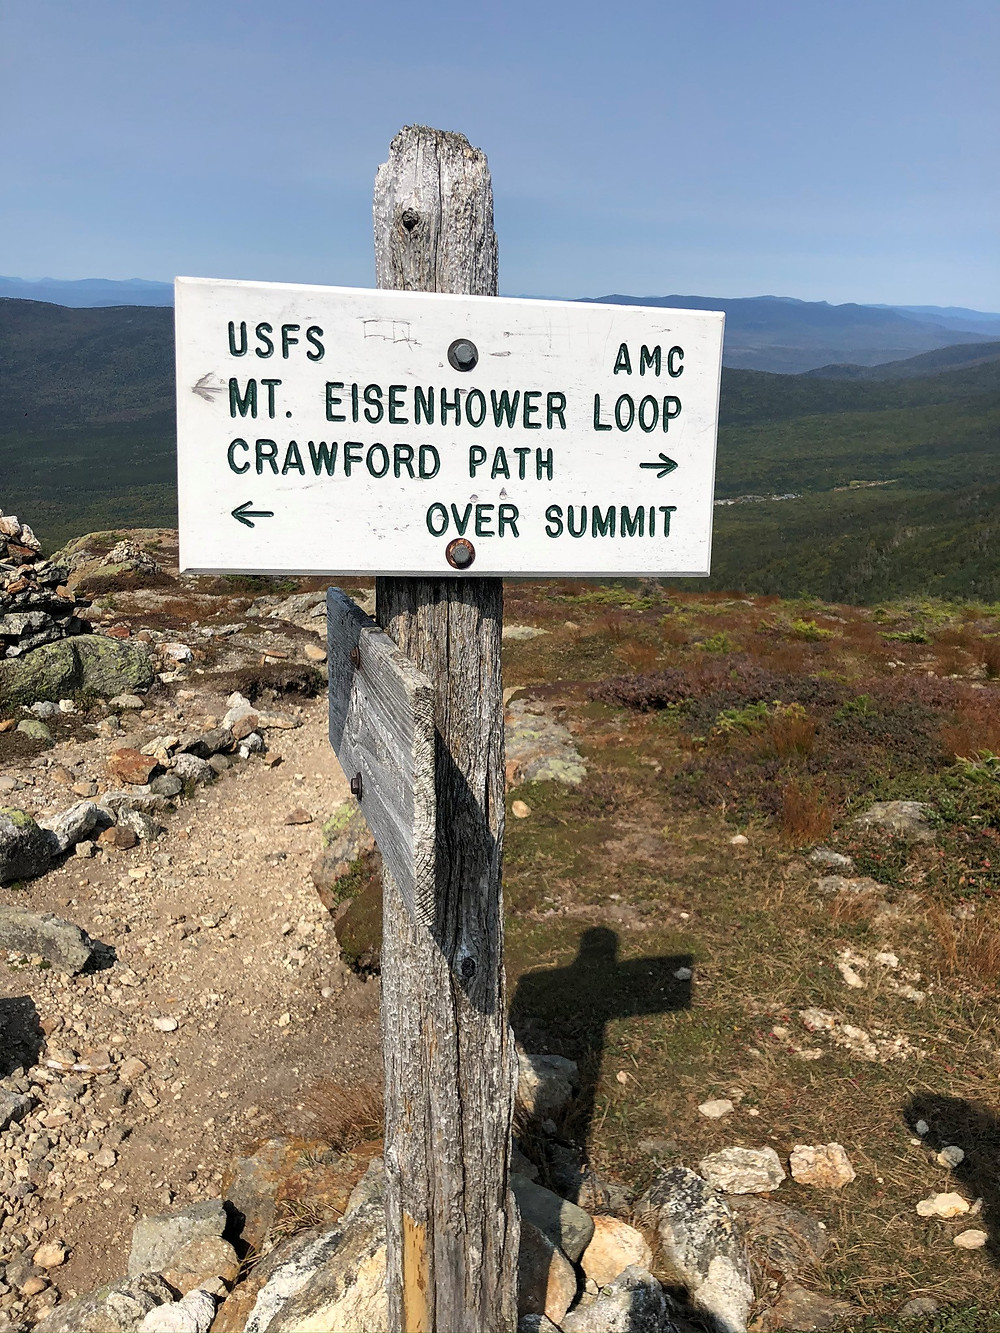 Trail sign junction of Edmands Path and Crawford Path